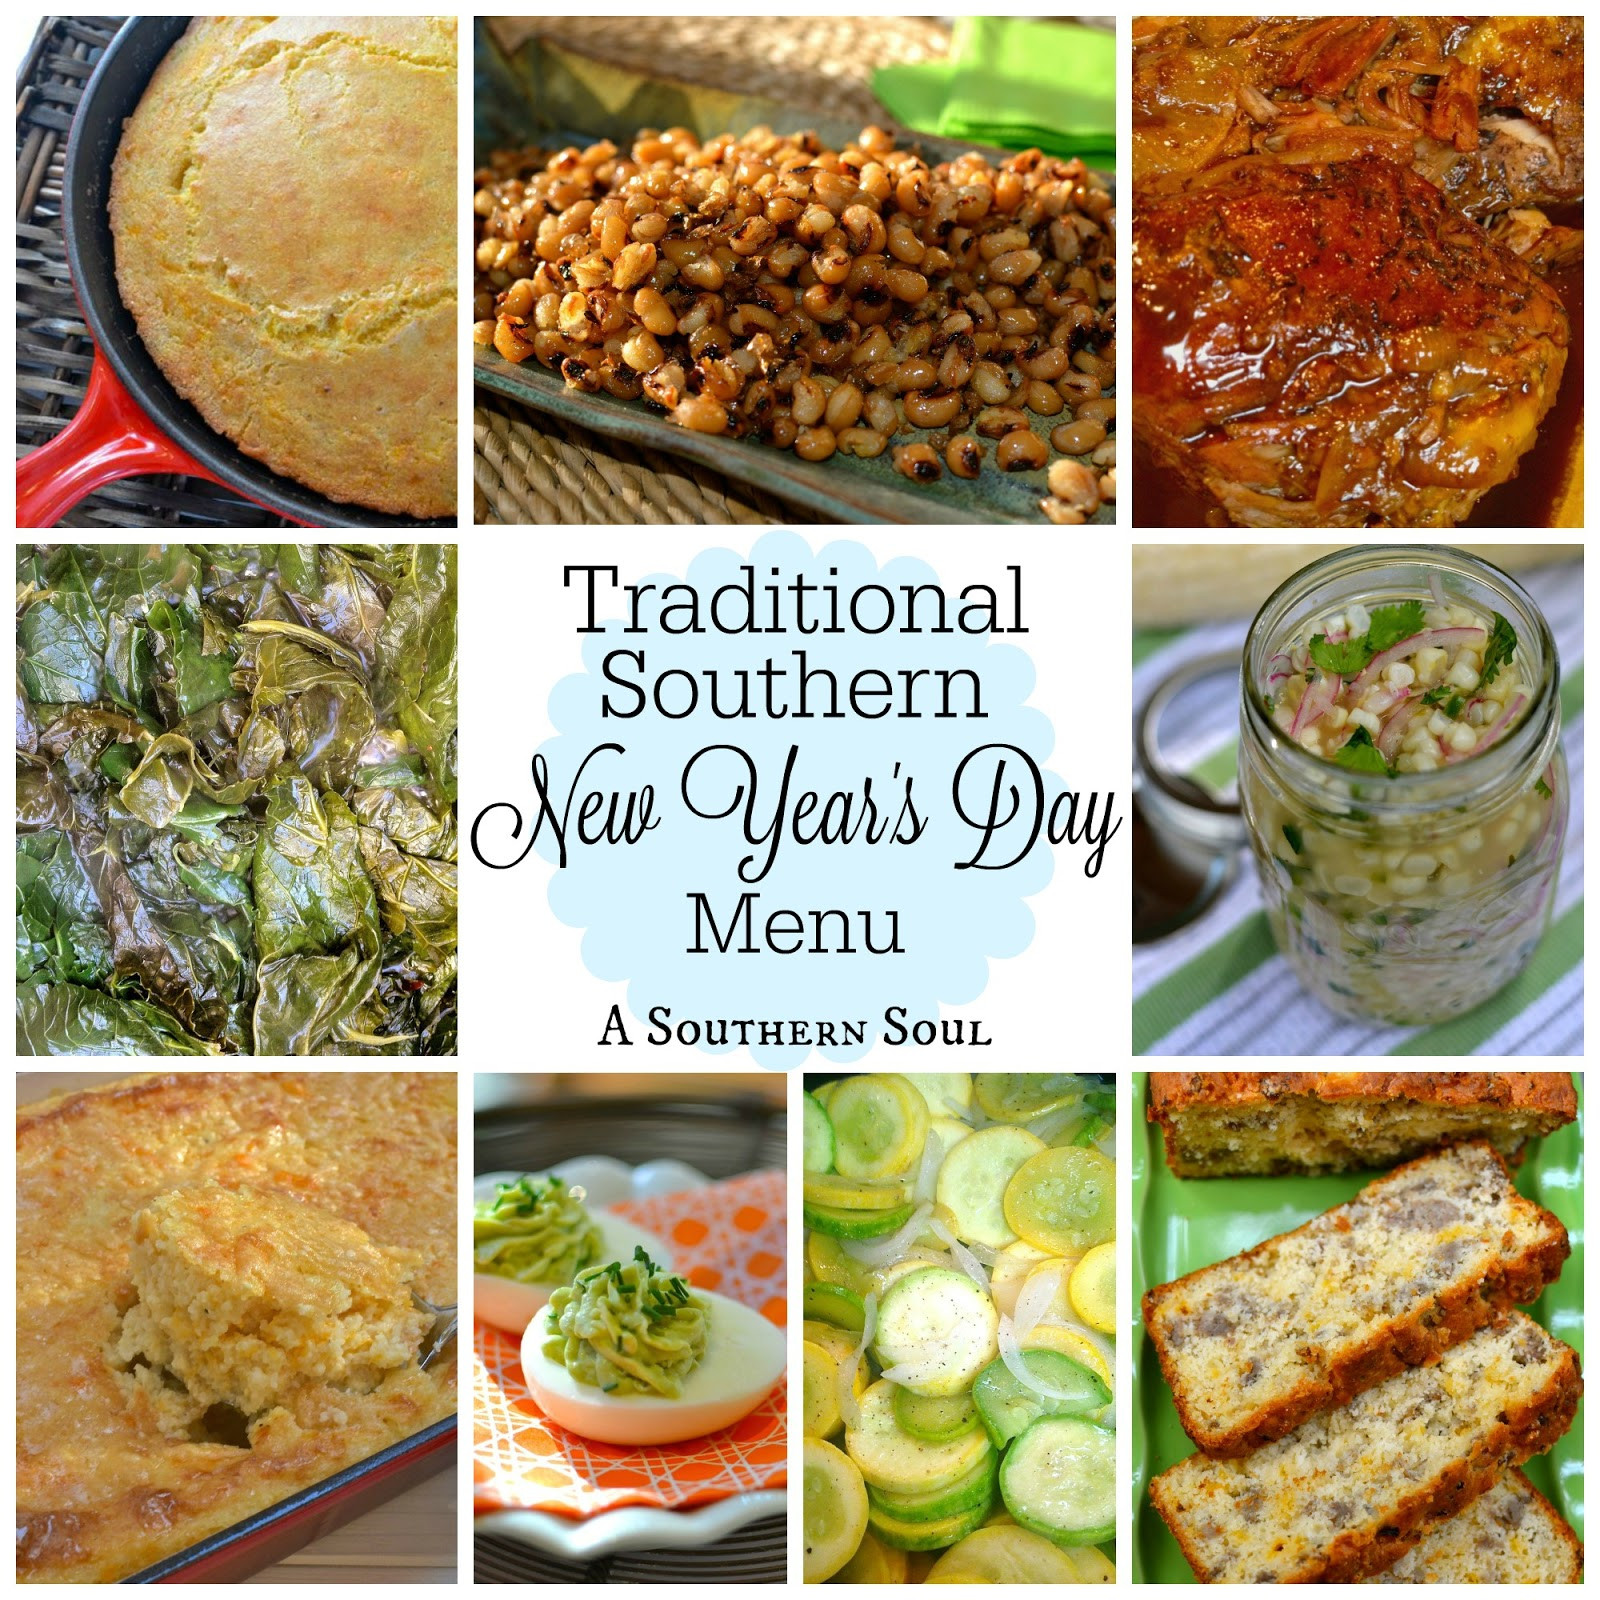 New Year Day Dessert Traditions  Traditional Southern New Year's Day Menu